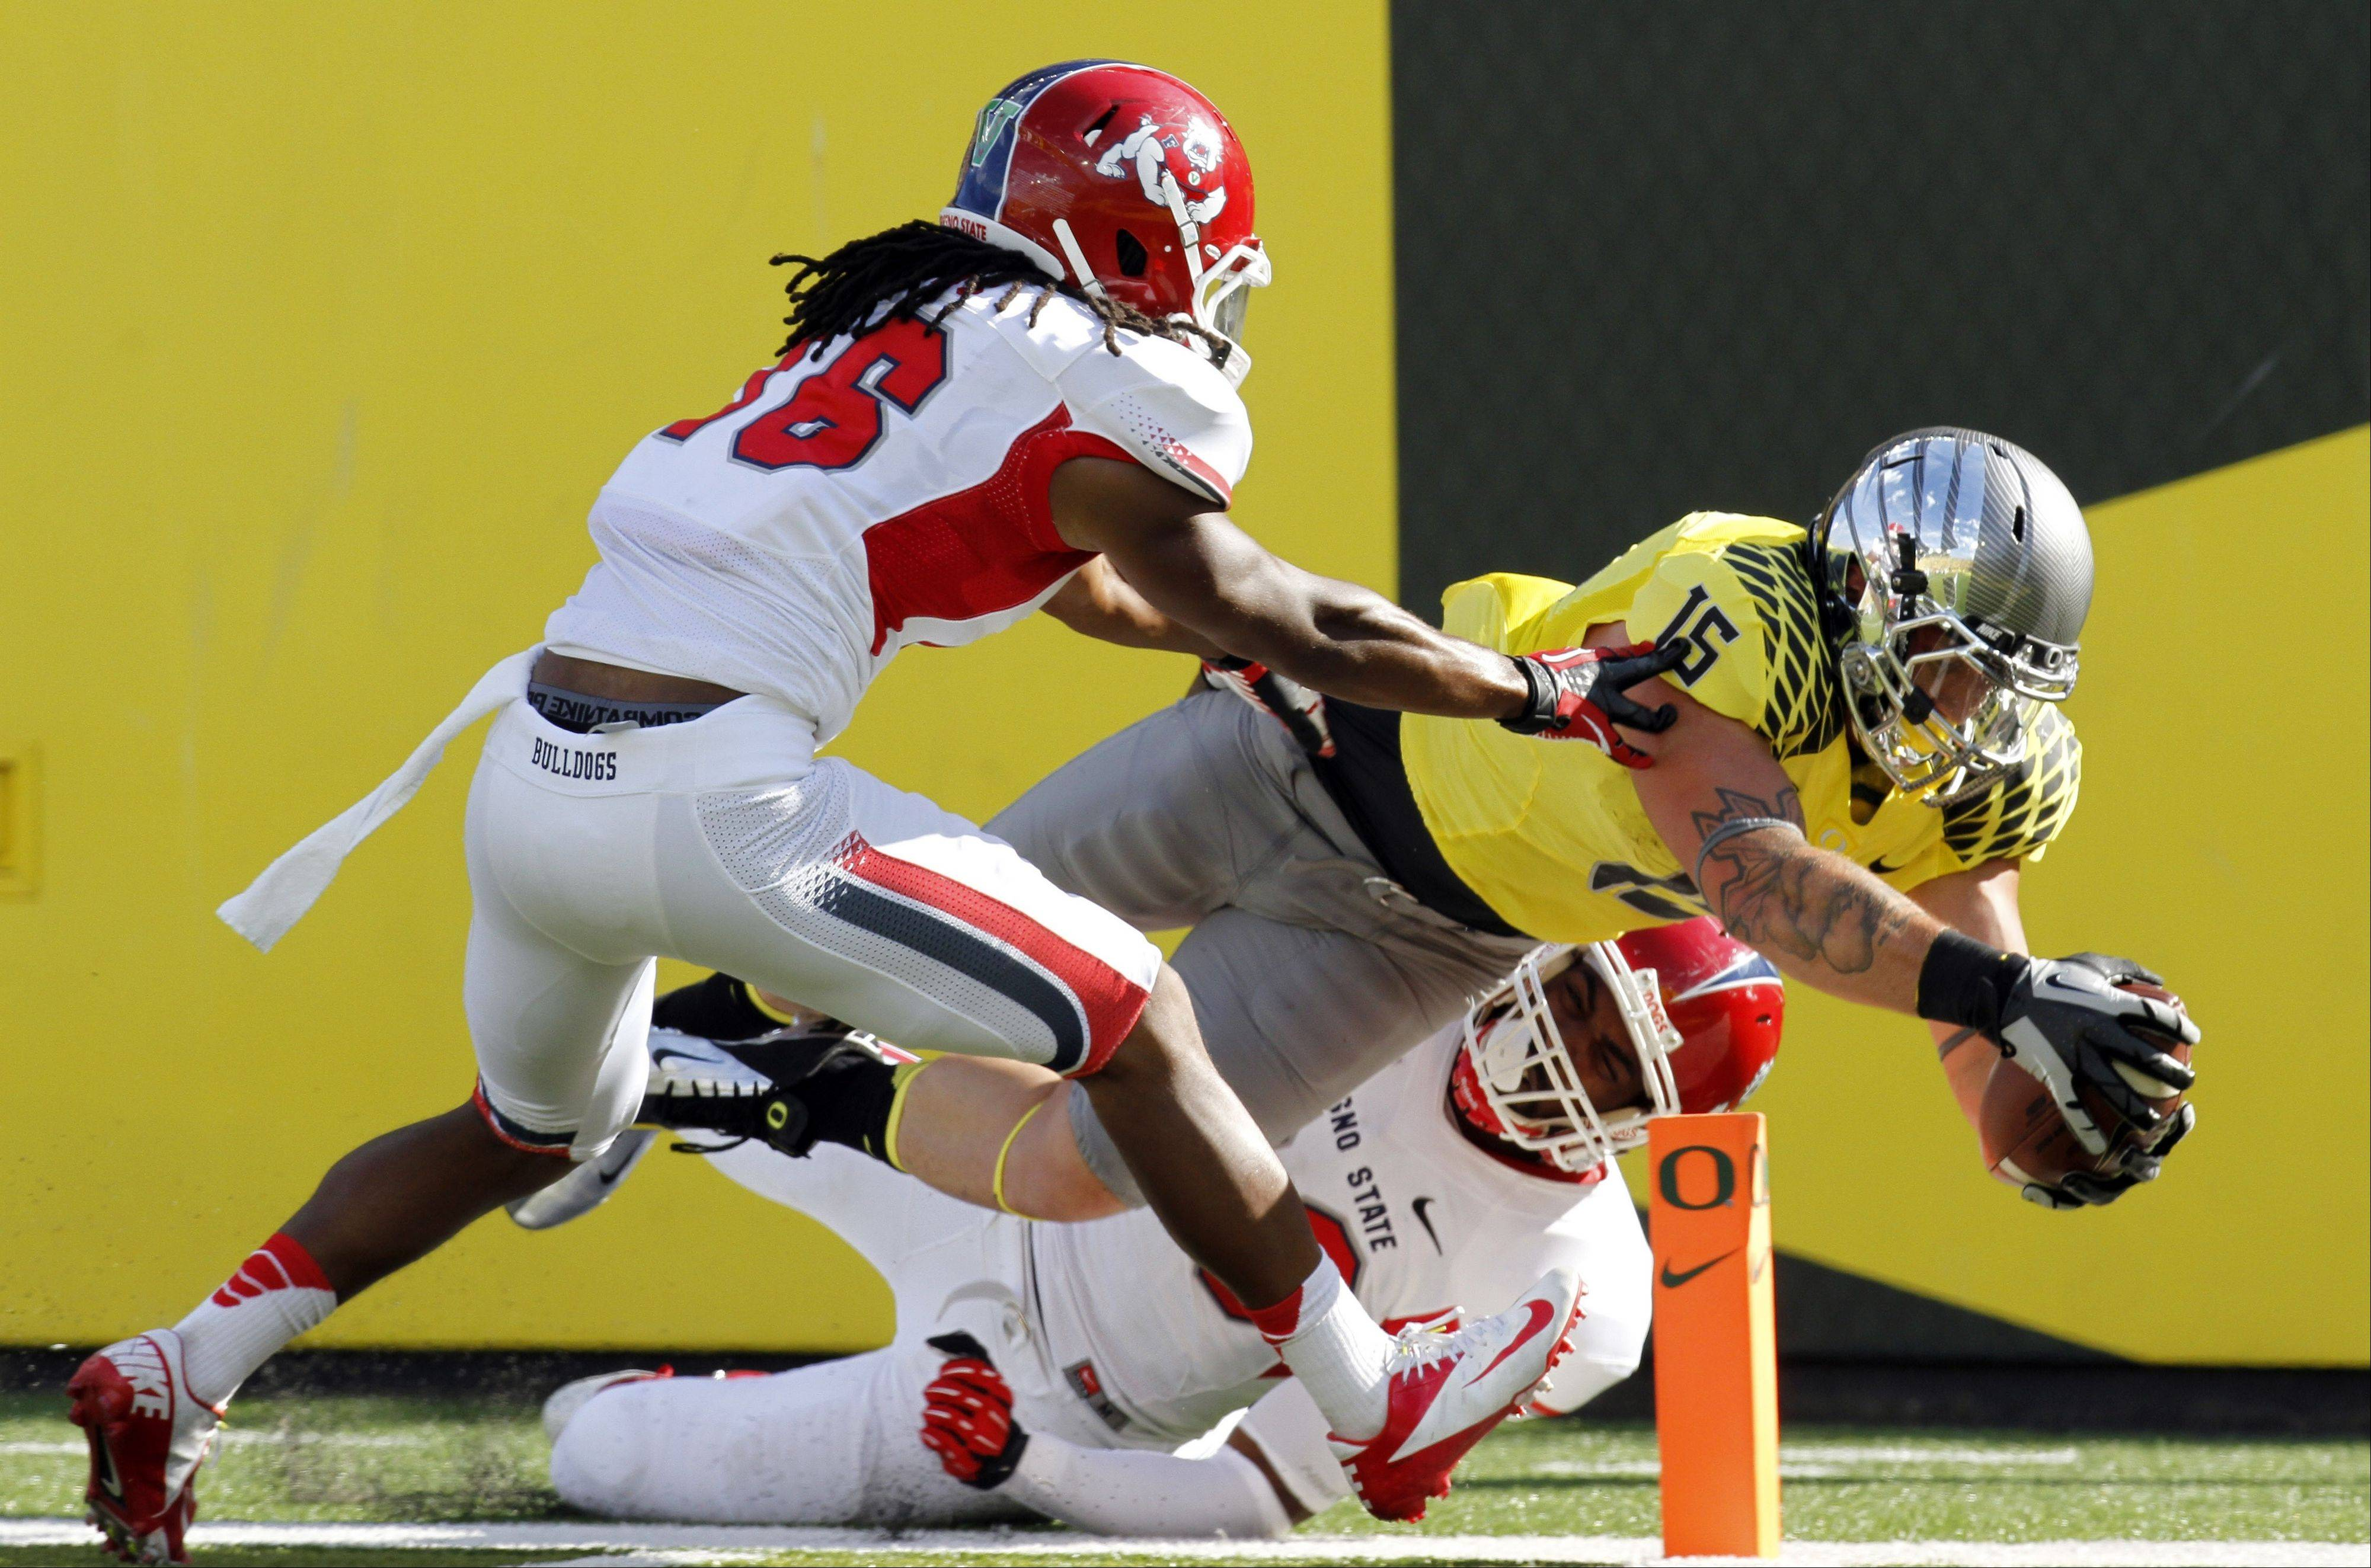 Oregon tight end Colt Lyerla dives in for a touchdown against Fresno State defenders Phillip Thomas, left, and Tristan Okpalaugo during the first half Saturday in Eugene, Ore.